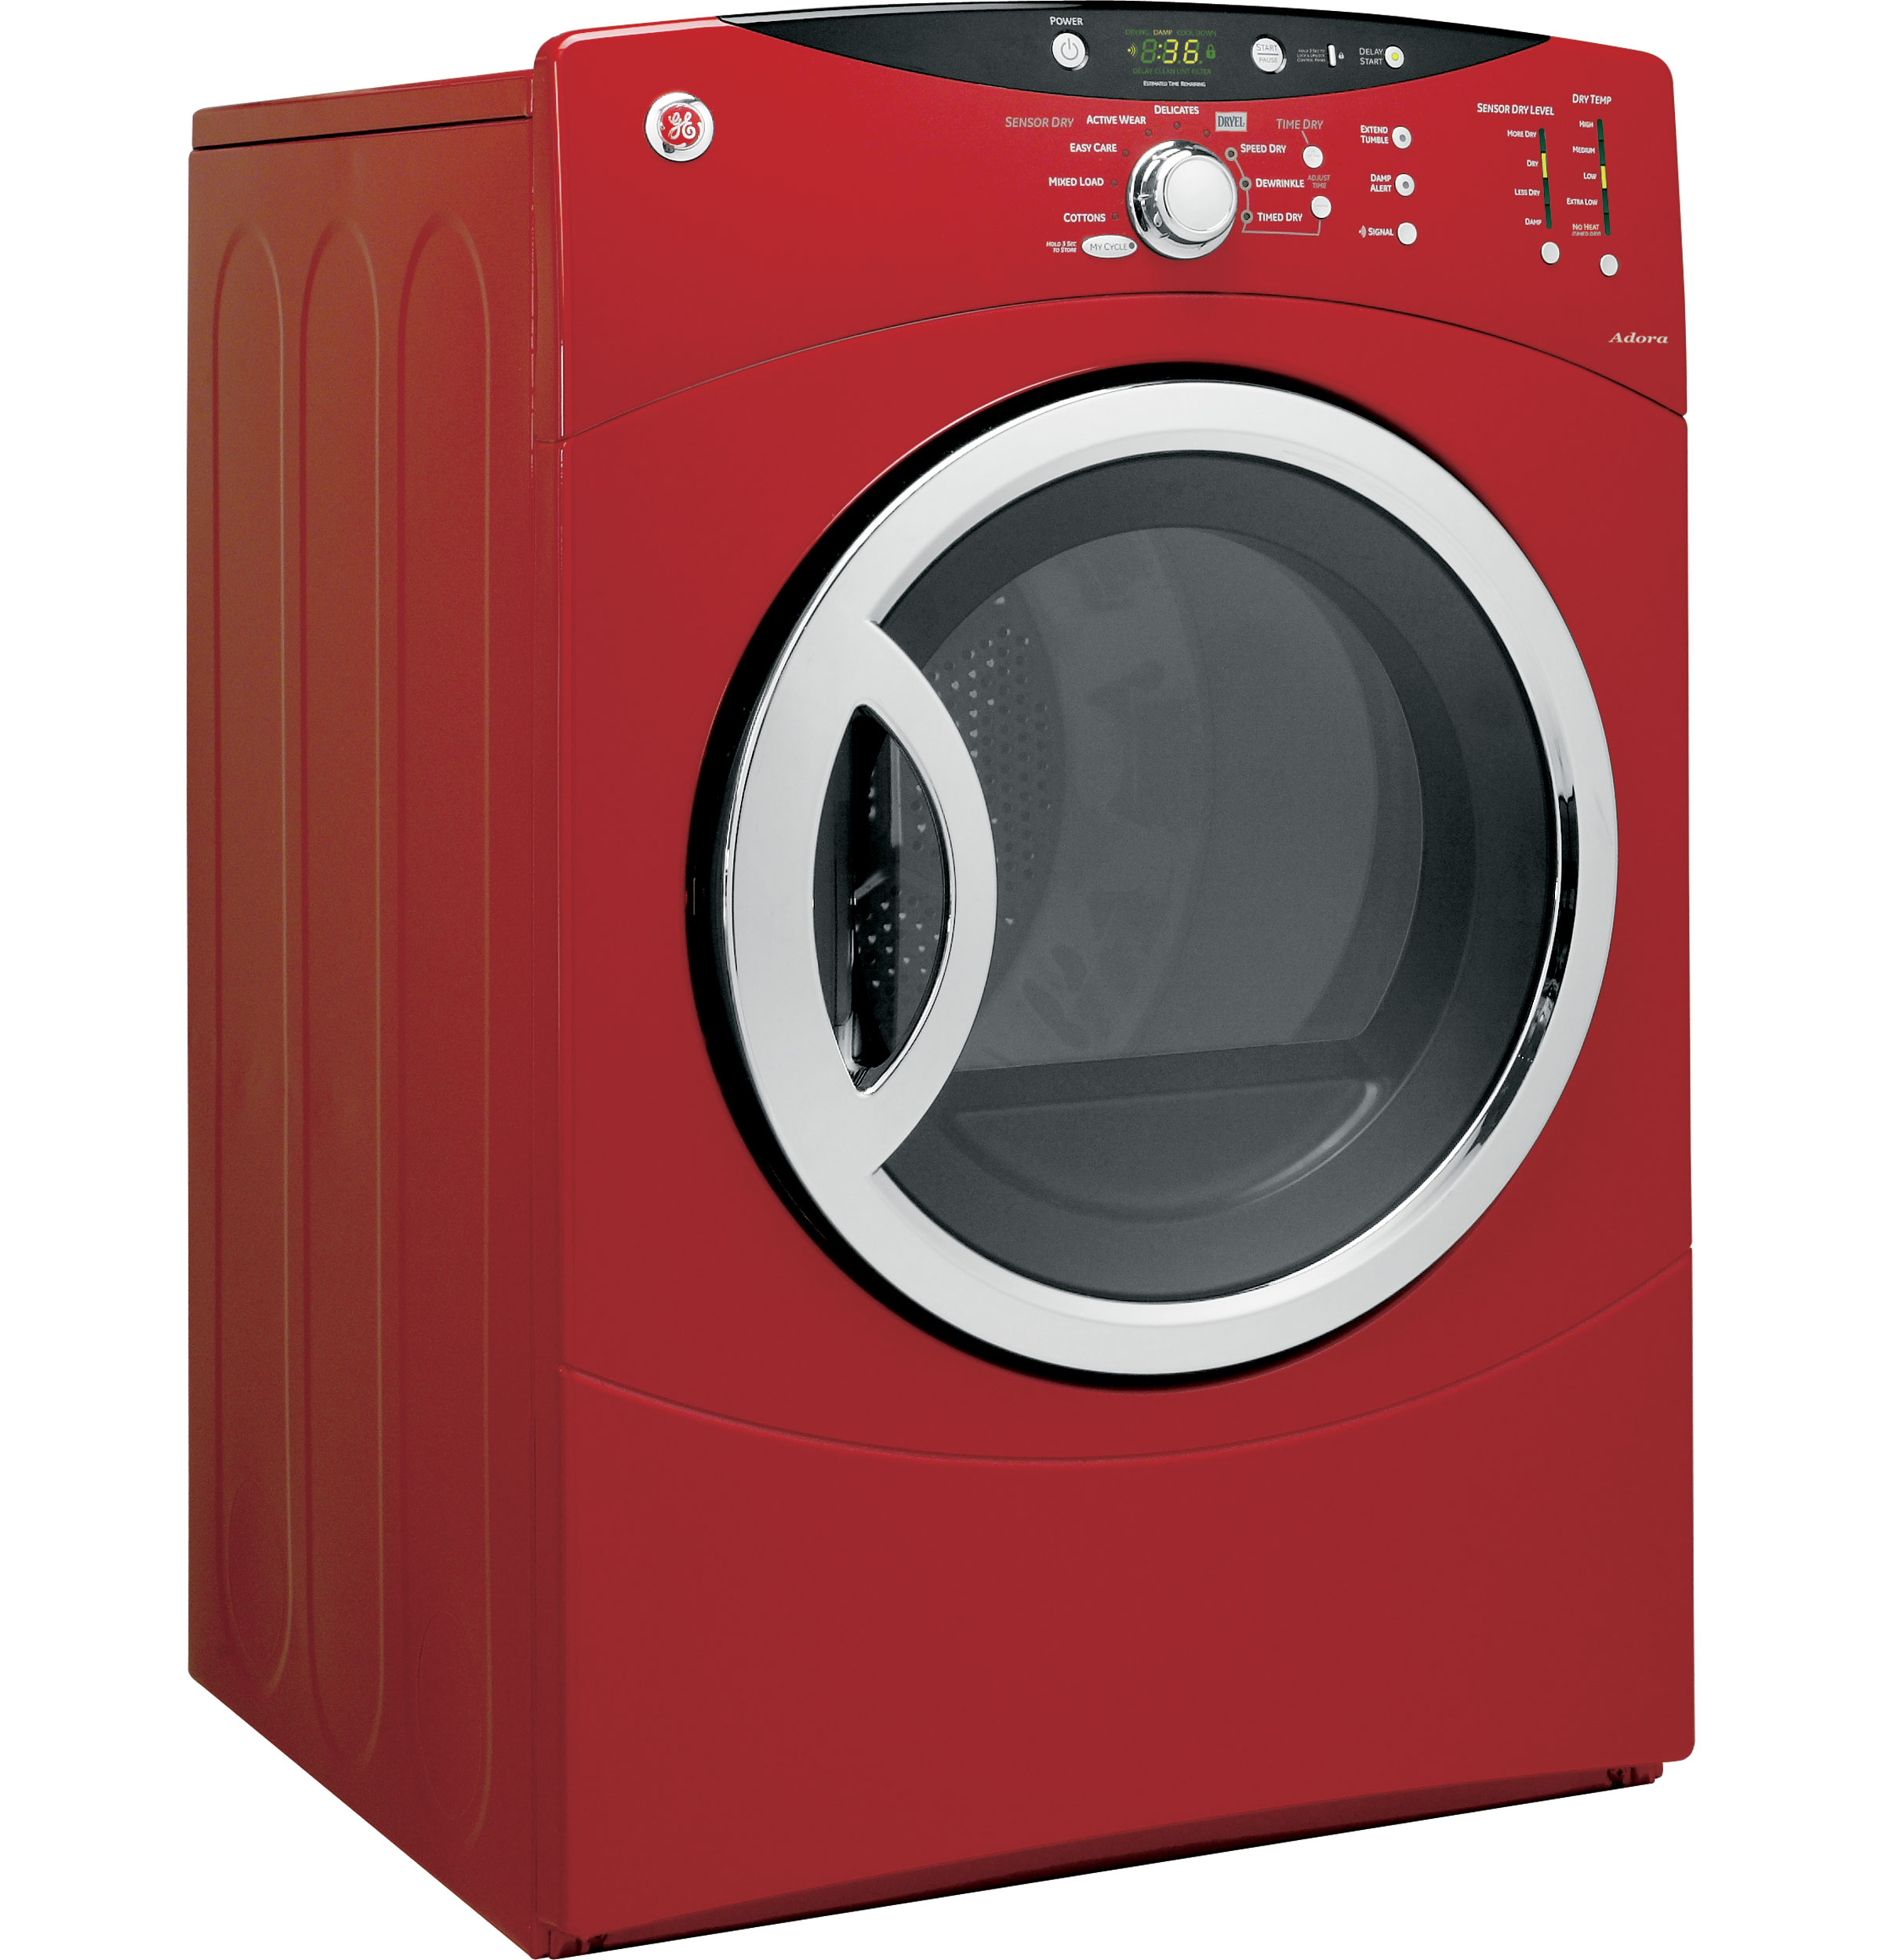 Adora washer and dryer system by V-ZUG